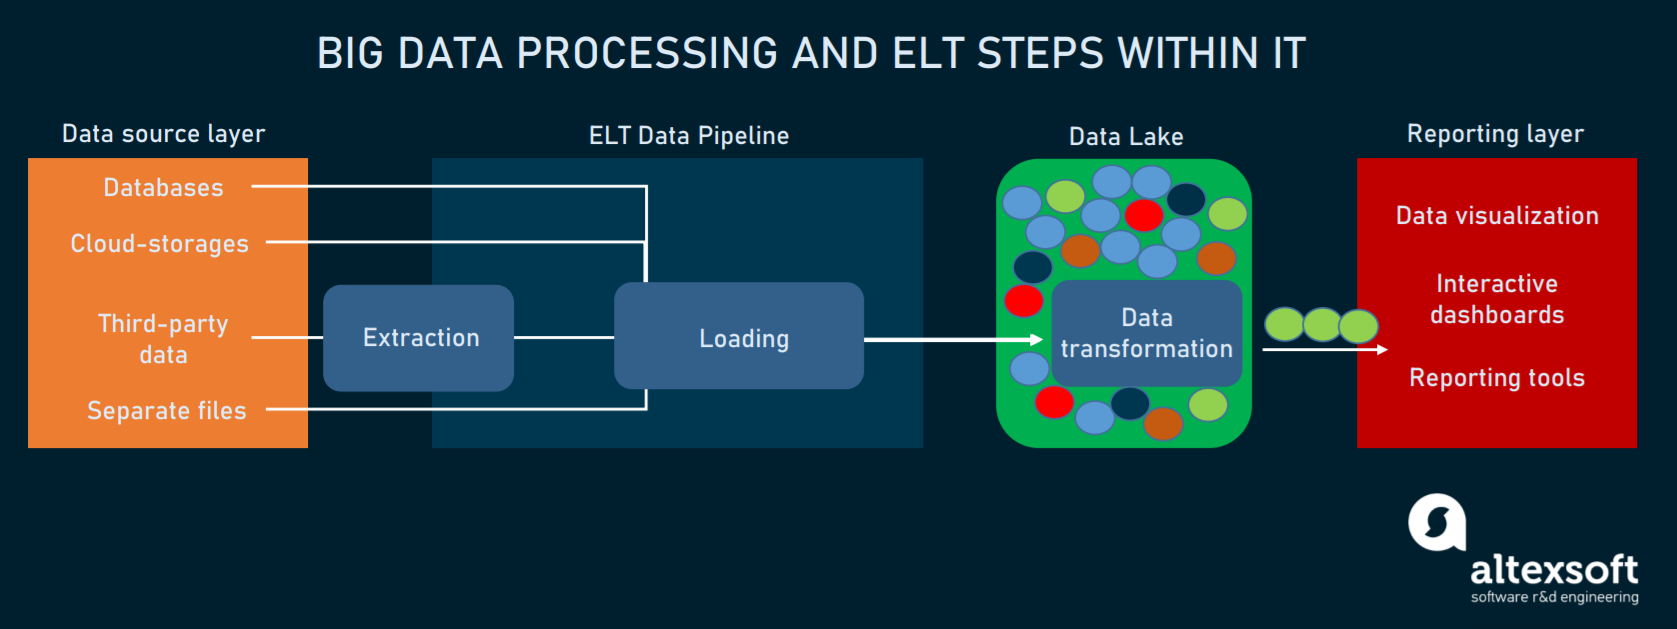 Big data processing using ELT pipeline and data lake